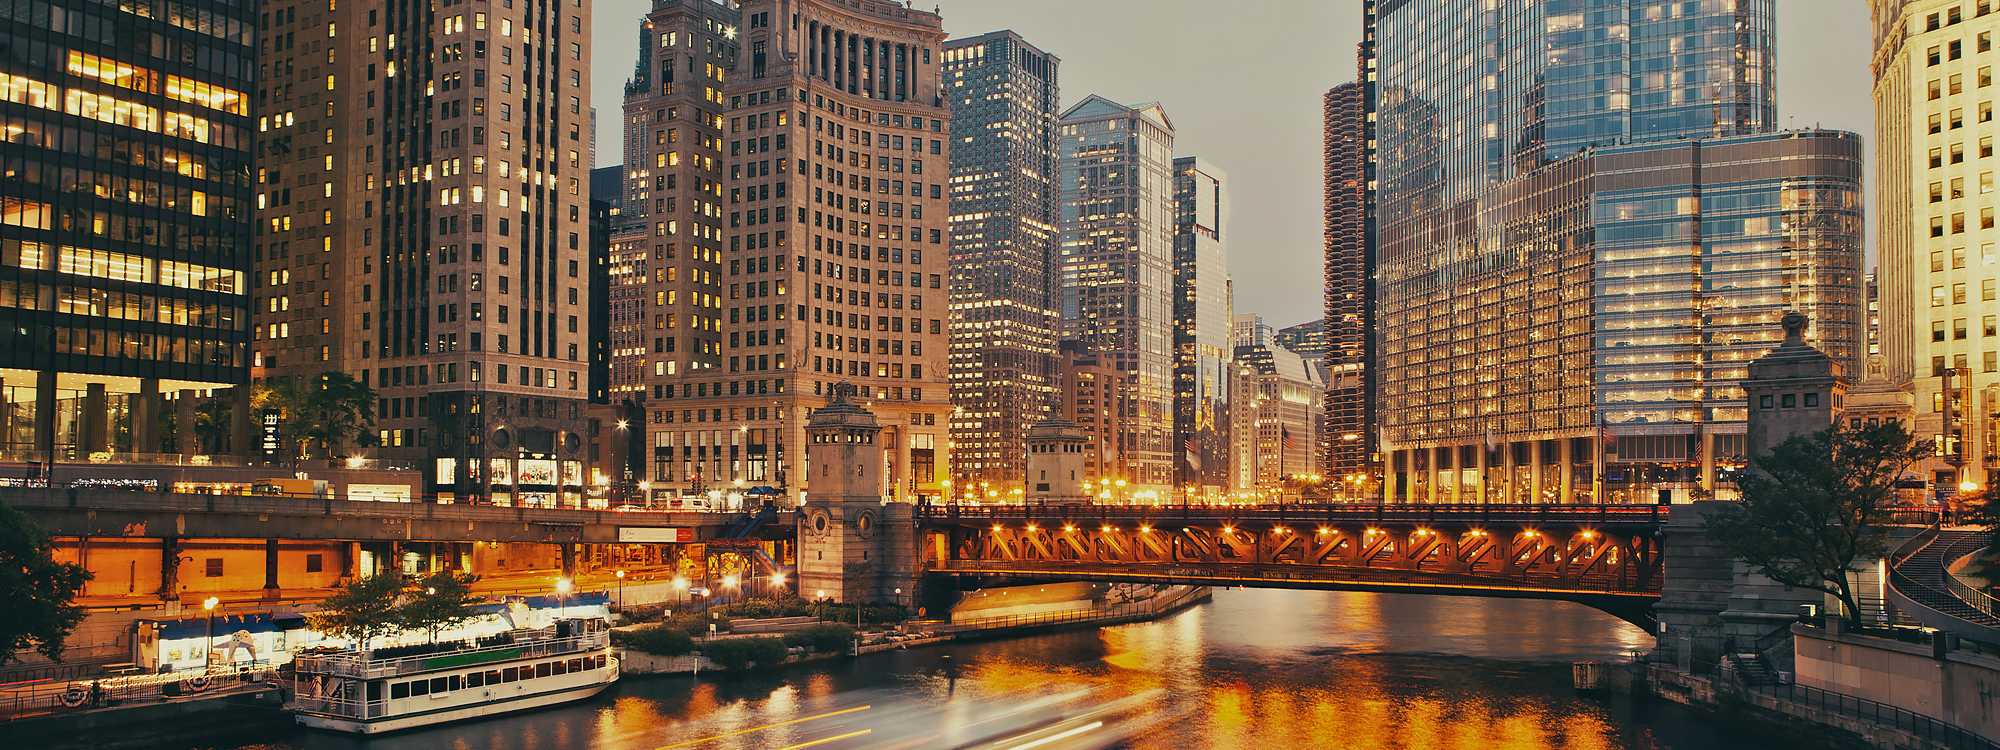 Chicago River and skyline scene.